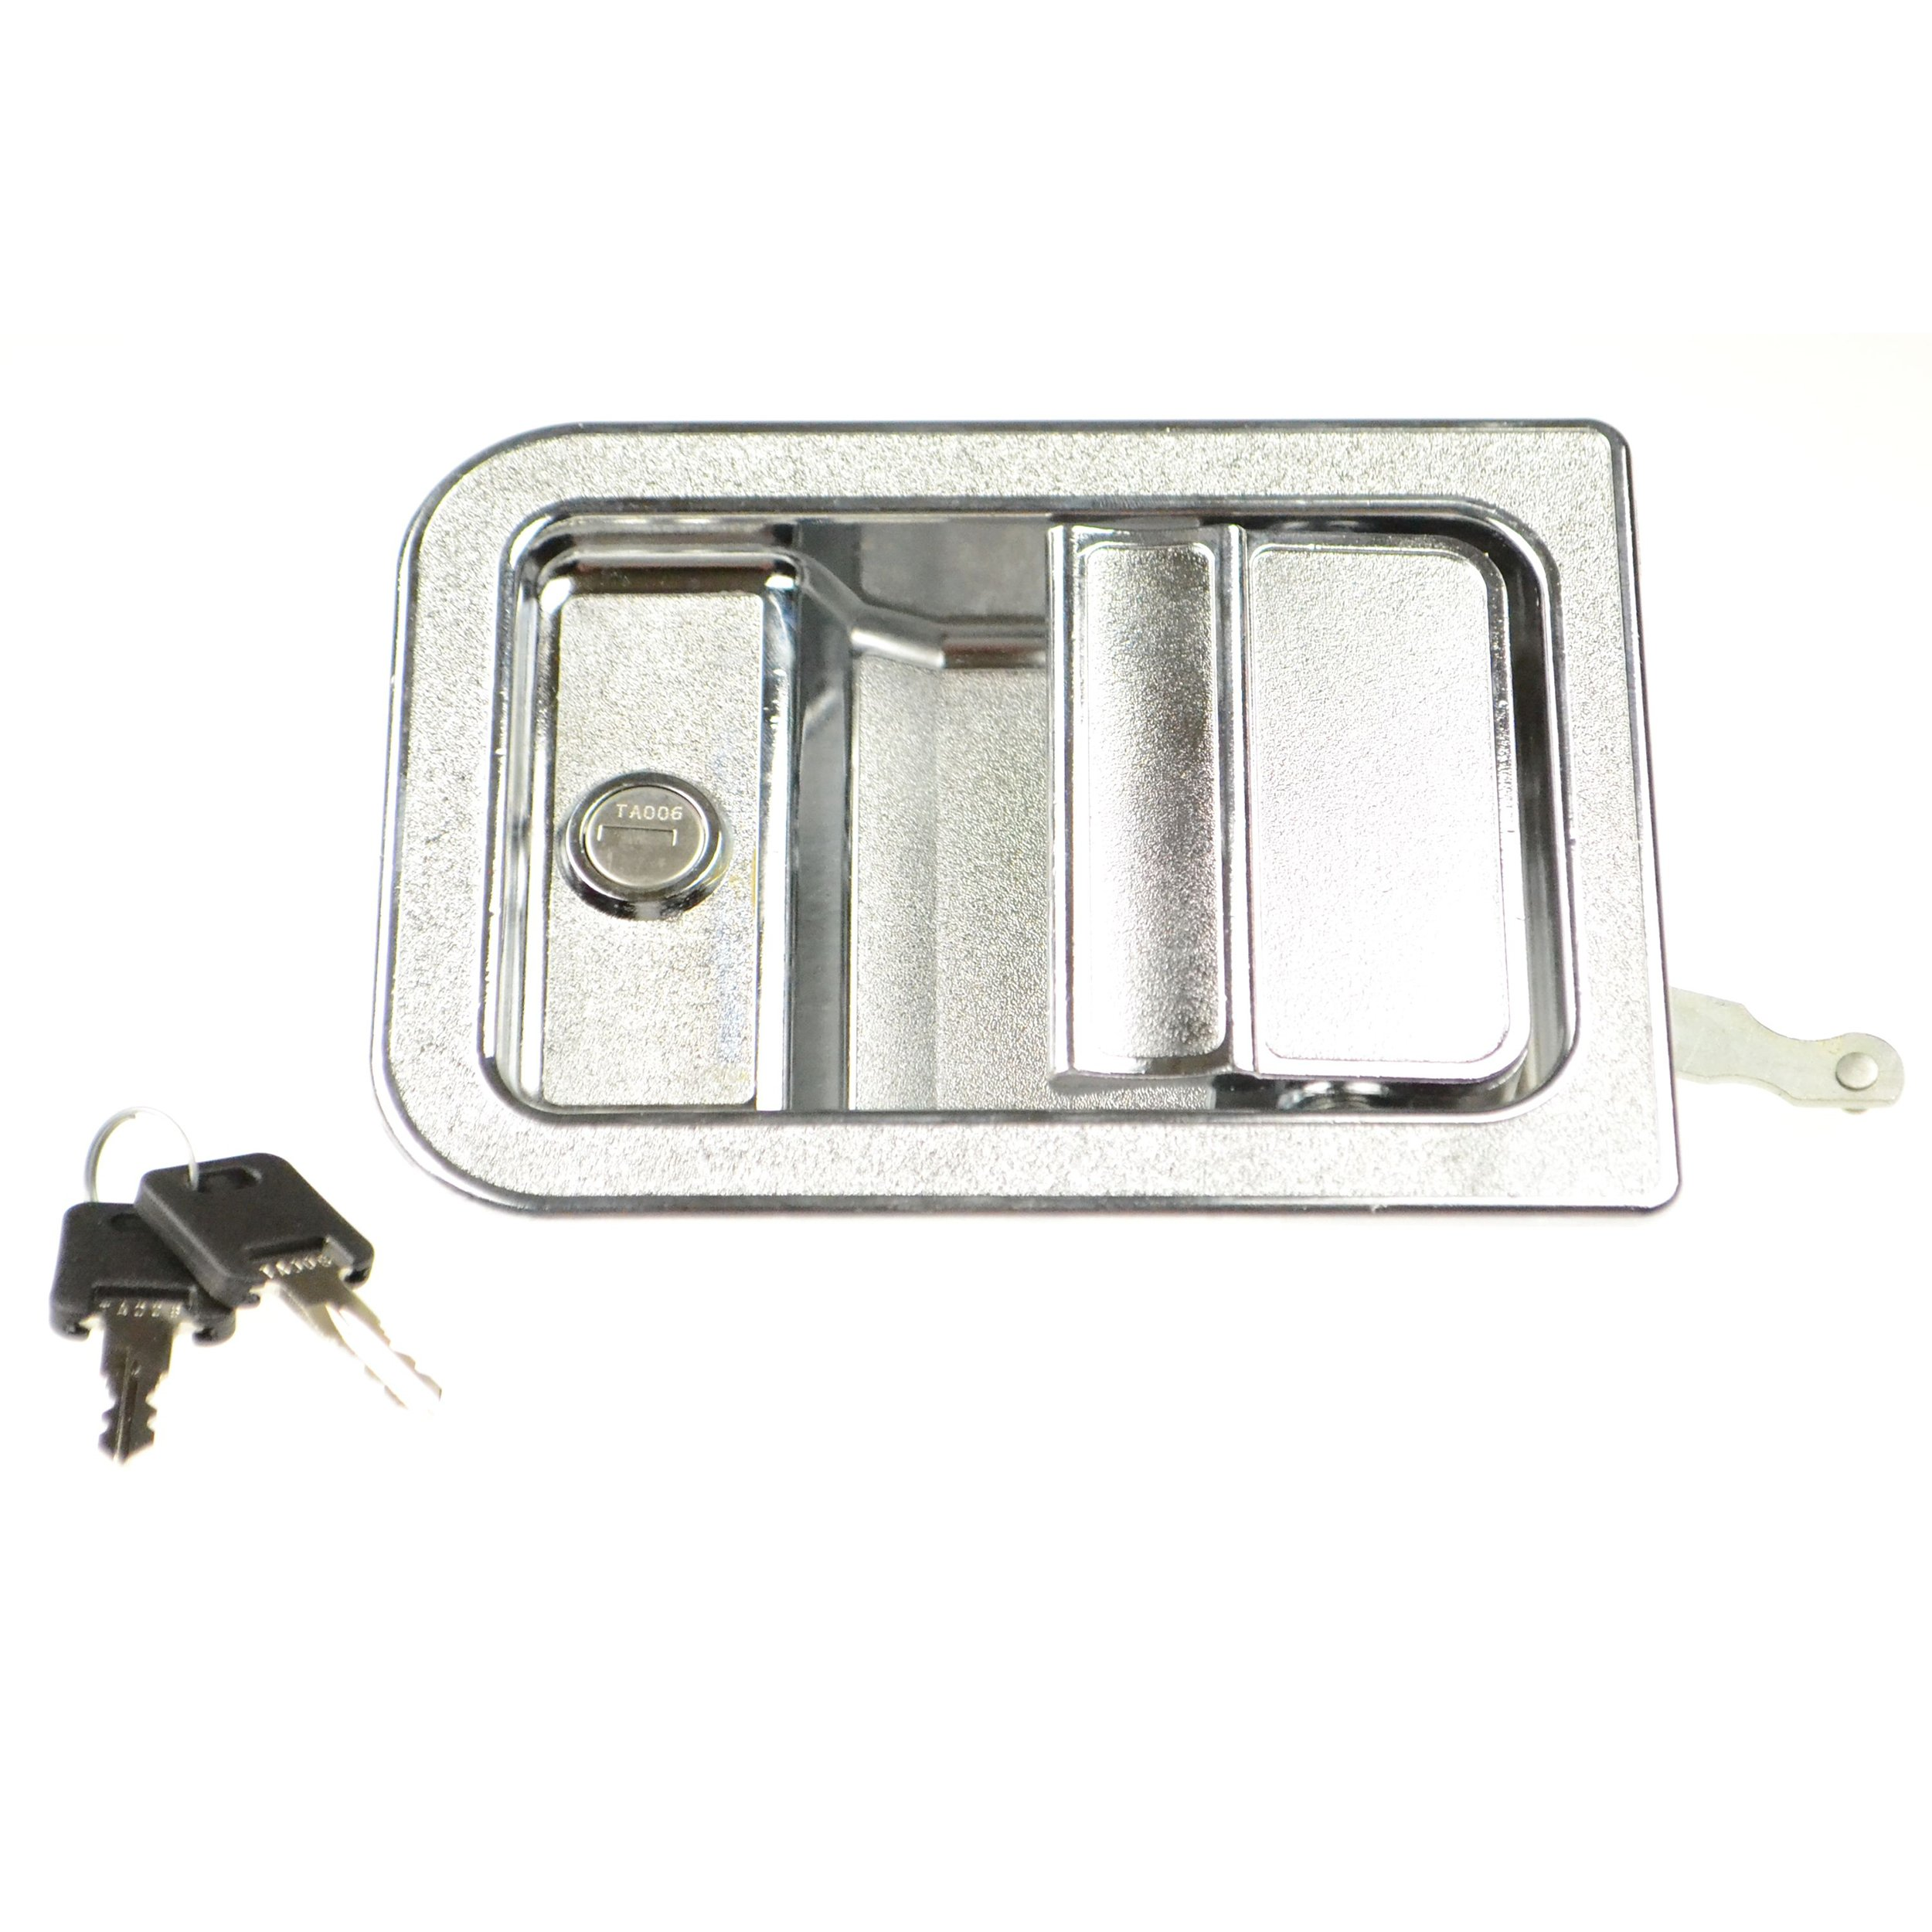 Tri-Mark 045017-05-000 Entrance Door Latch - Silver by TRIMARK (Image #1)